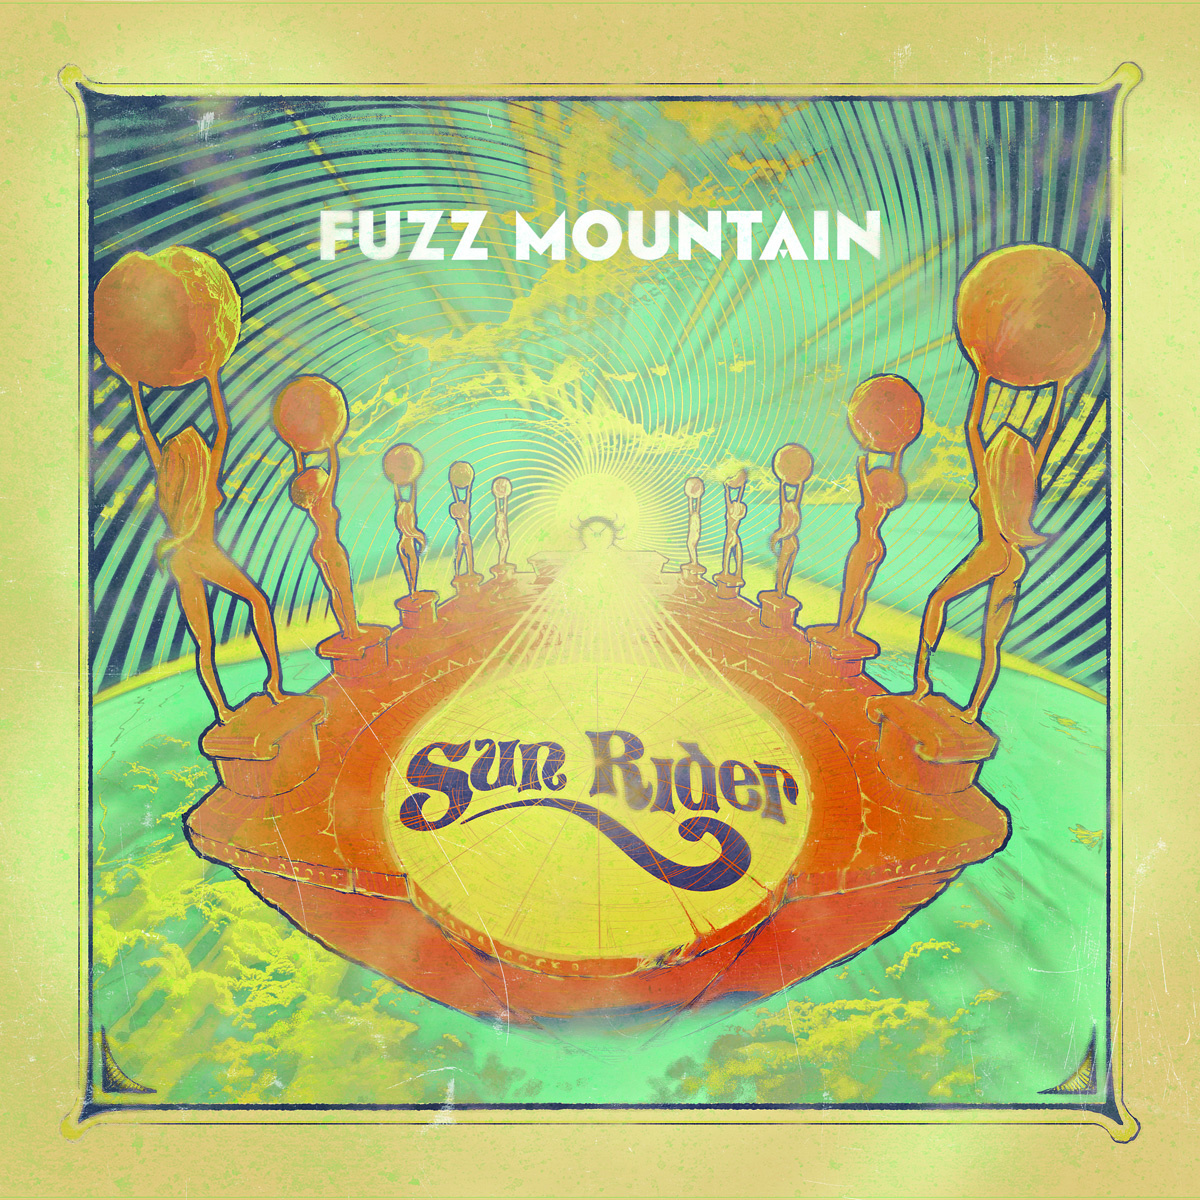 Sun Rider | Fuzz Mountain (album review) ★★★★☆